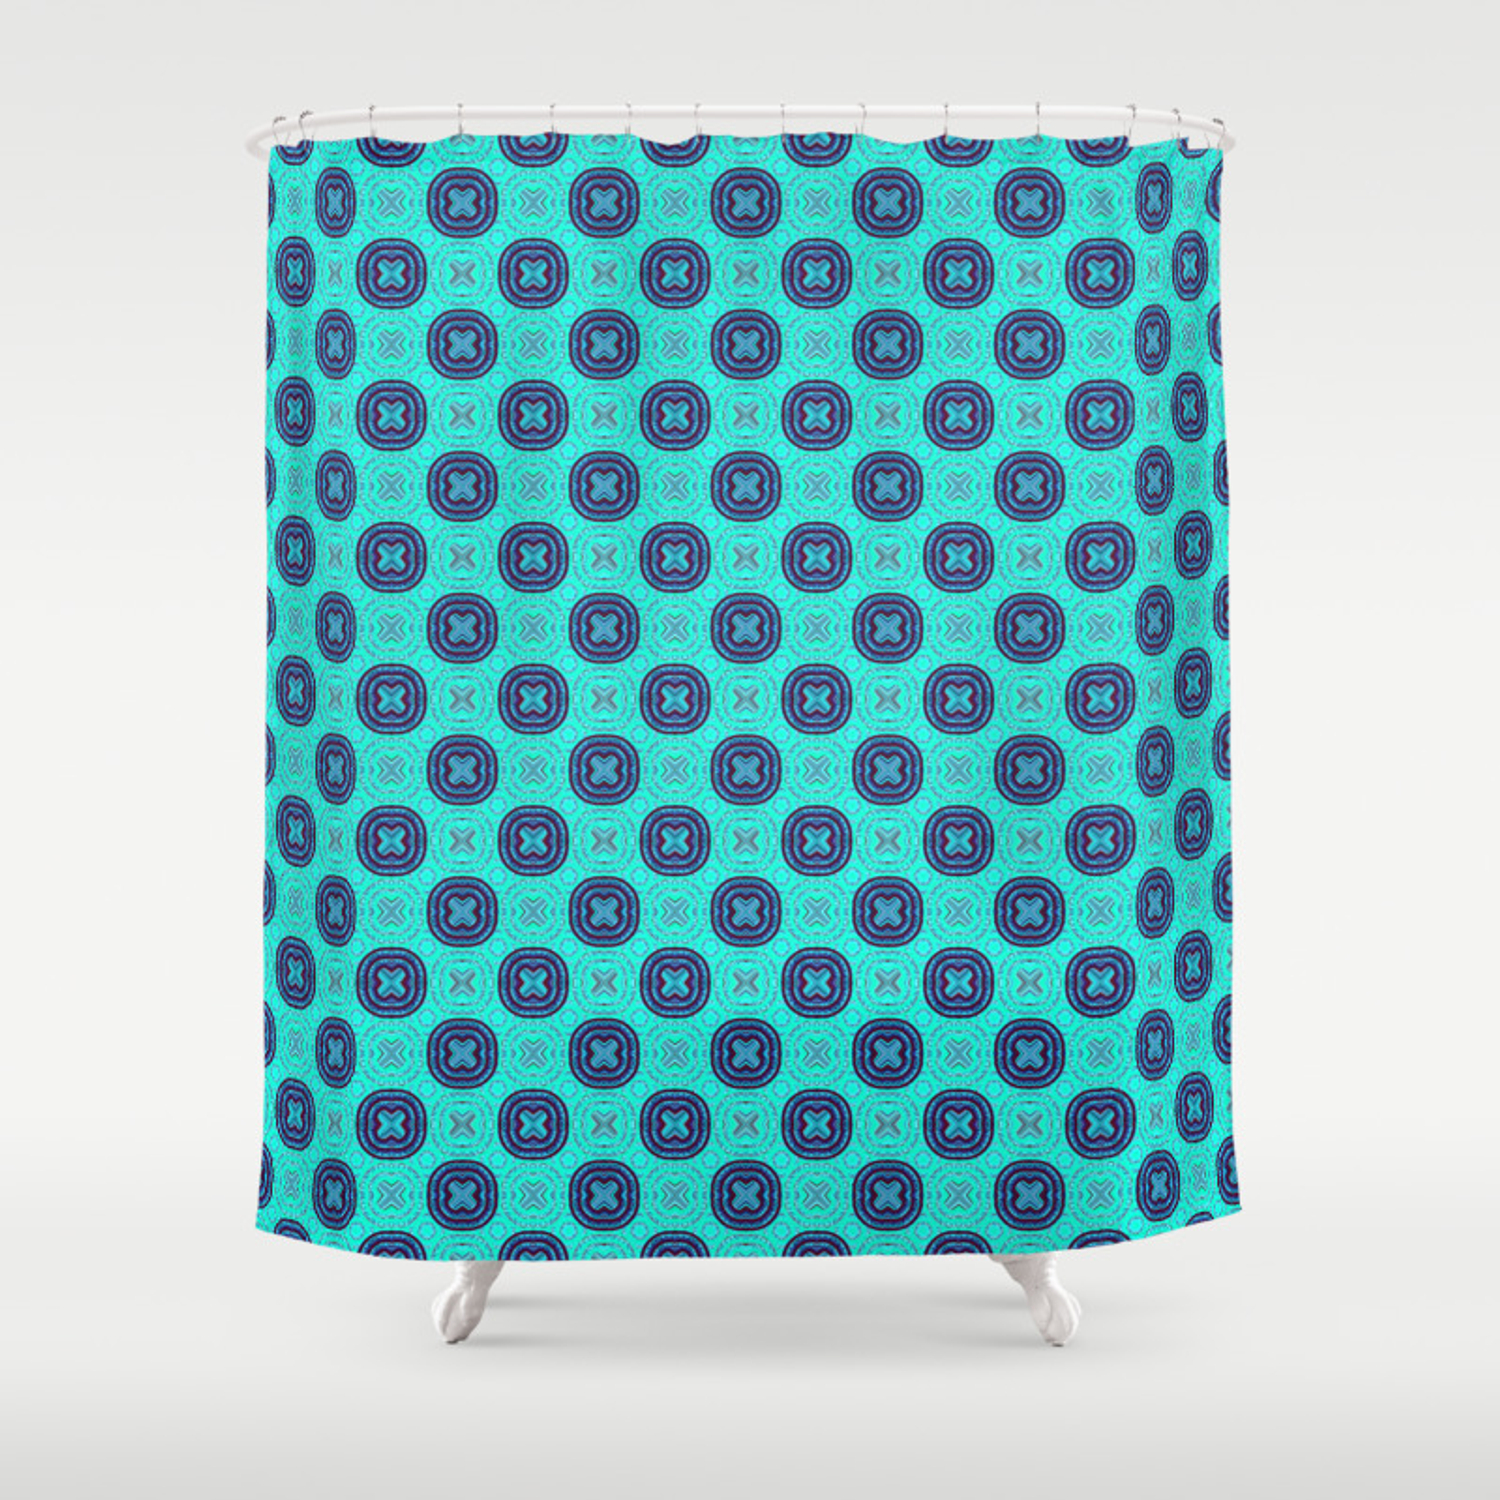 Aqua And Navy Elegant African Fabric Pattern Shower Curtain